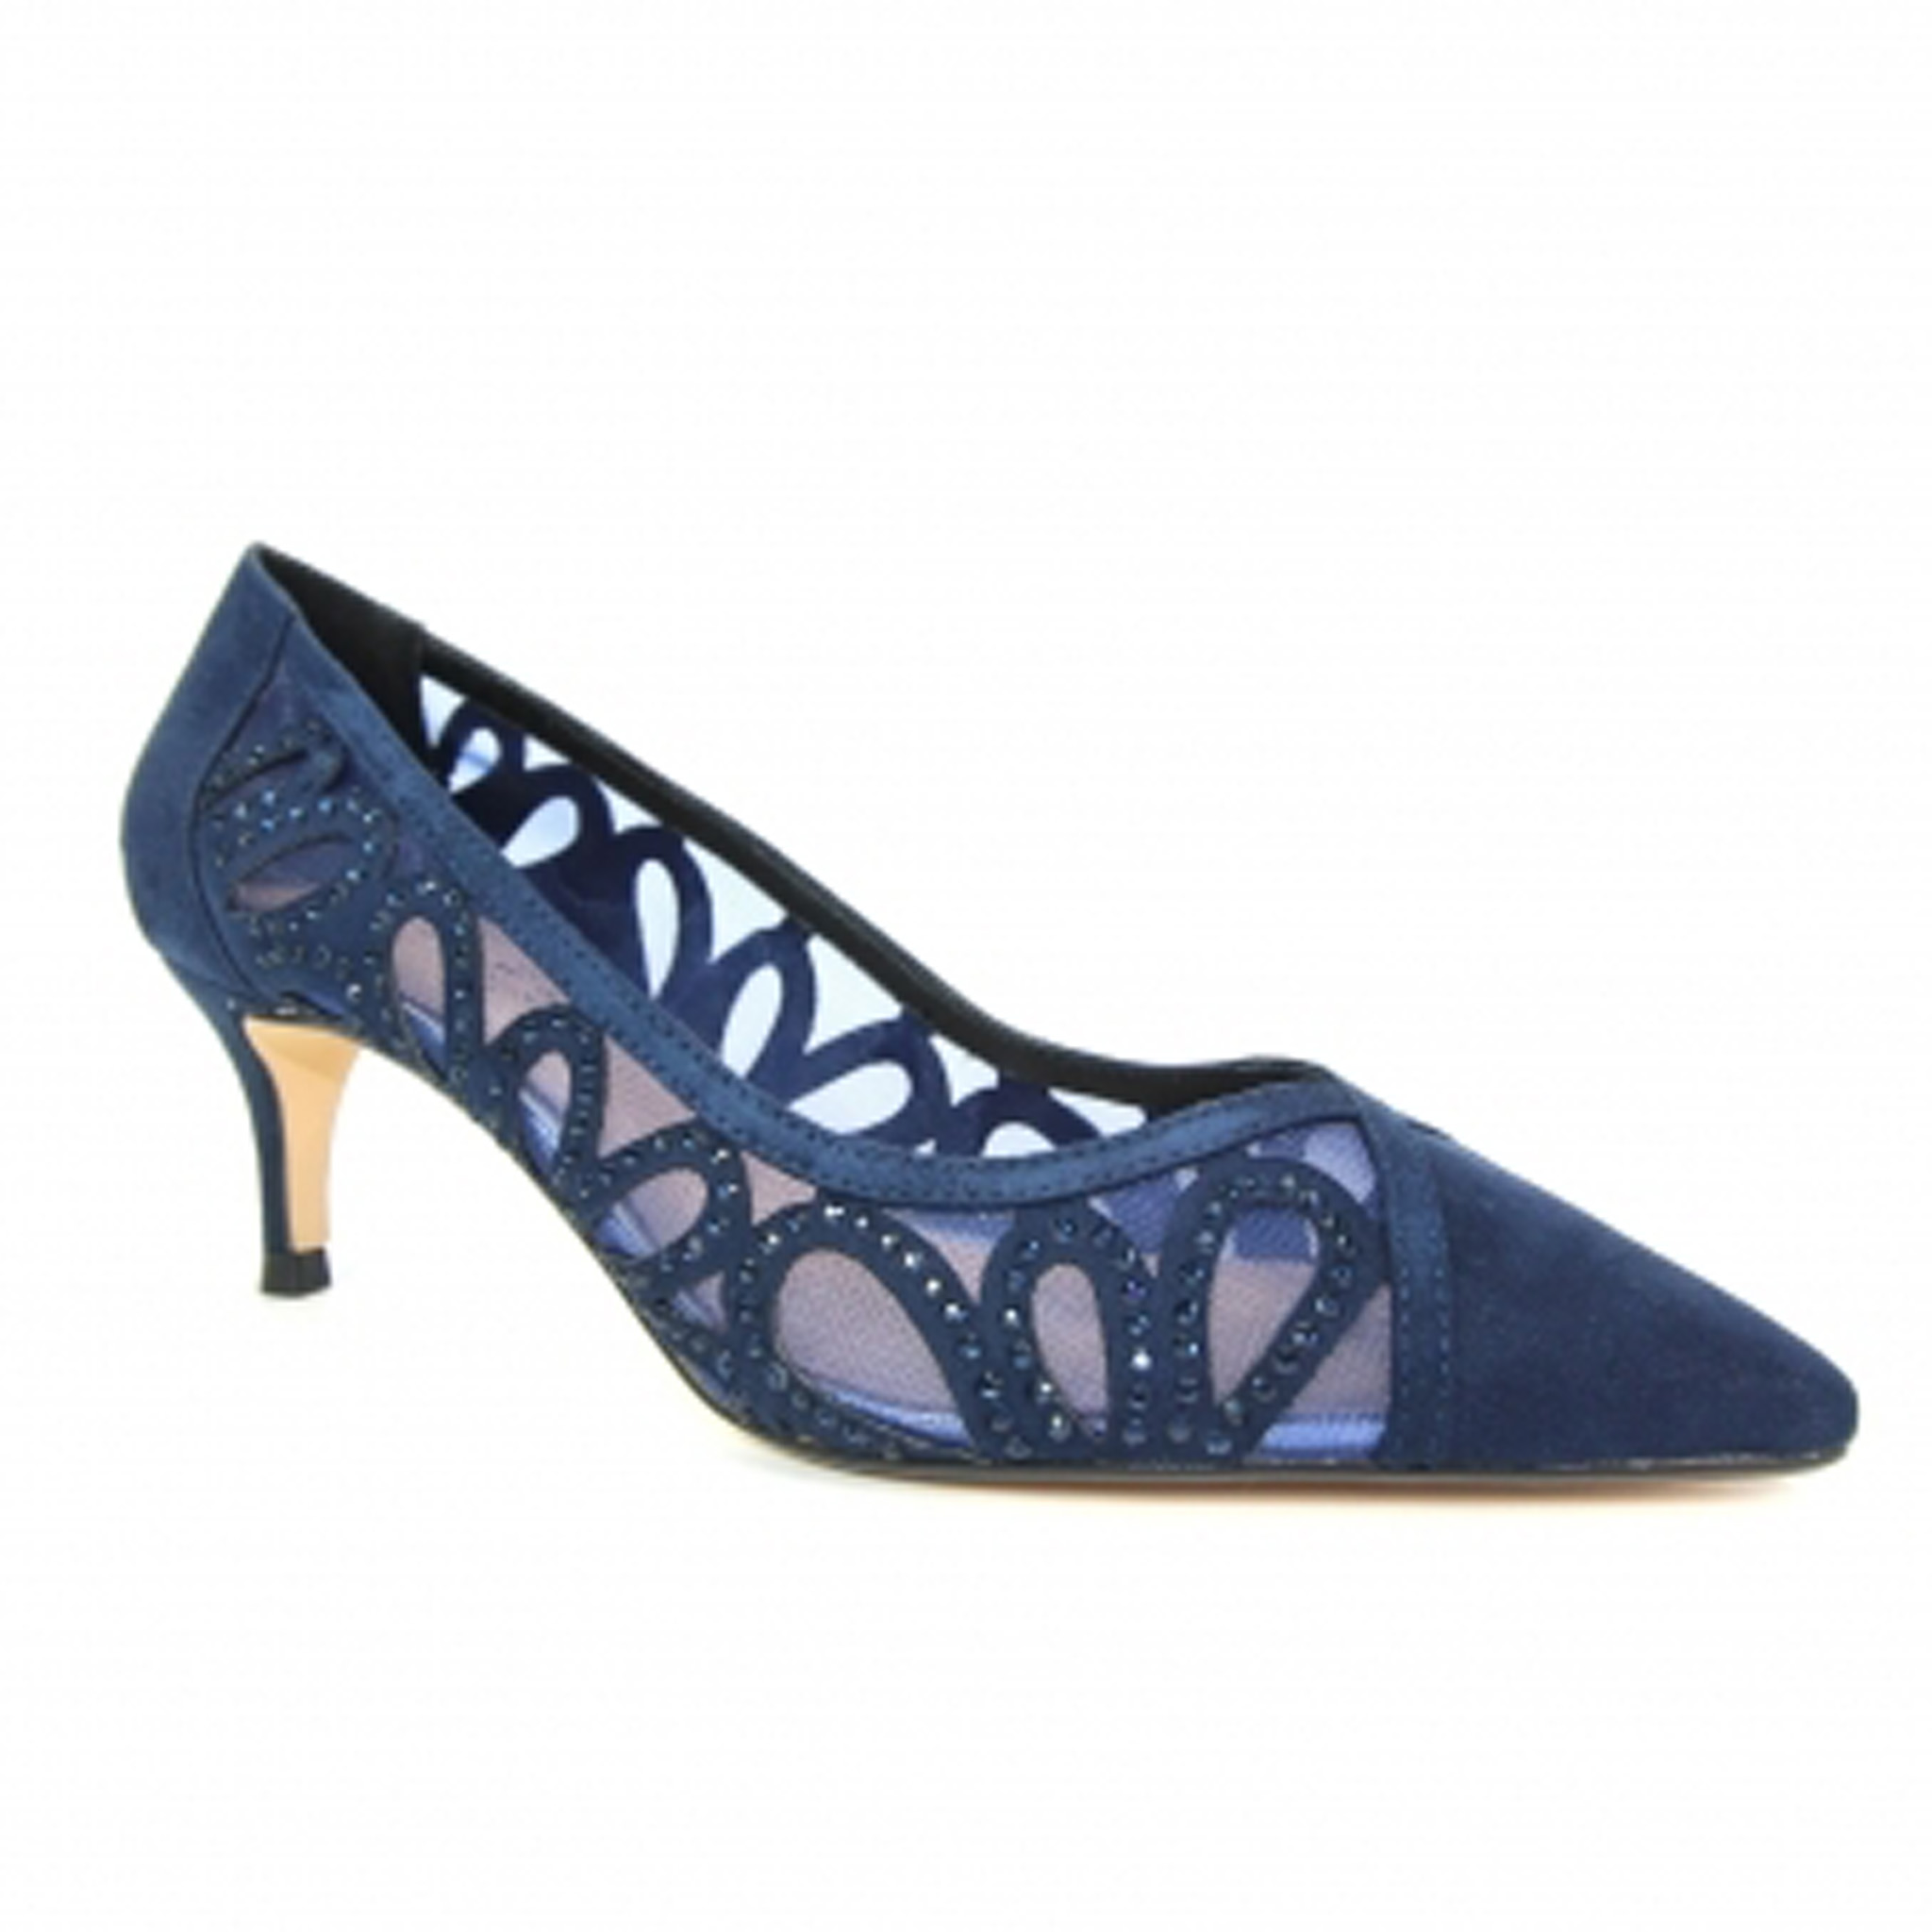 melbourne-pointed-toe-court-p4523-271929